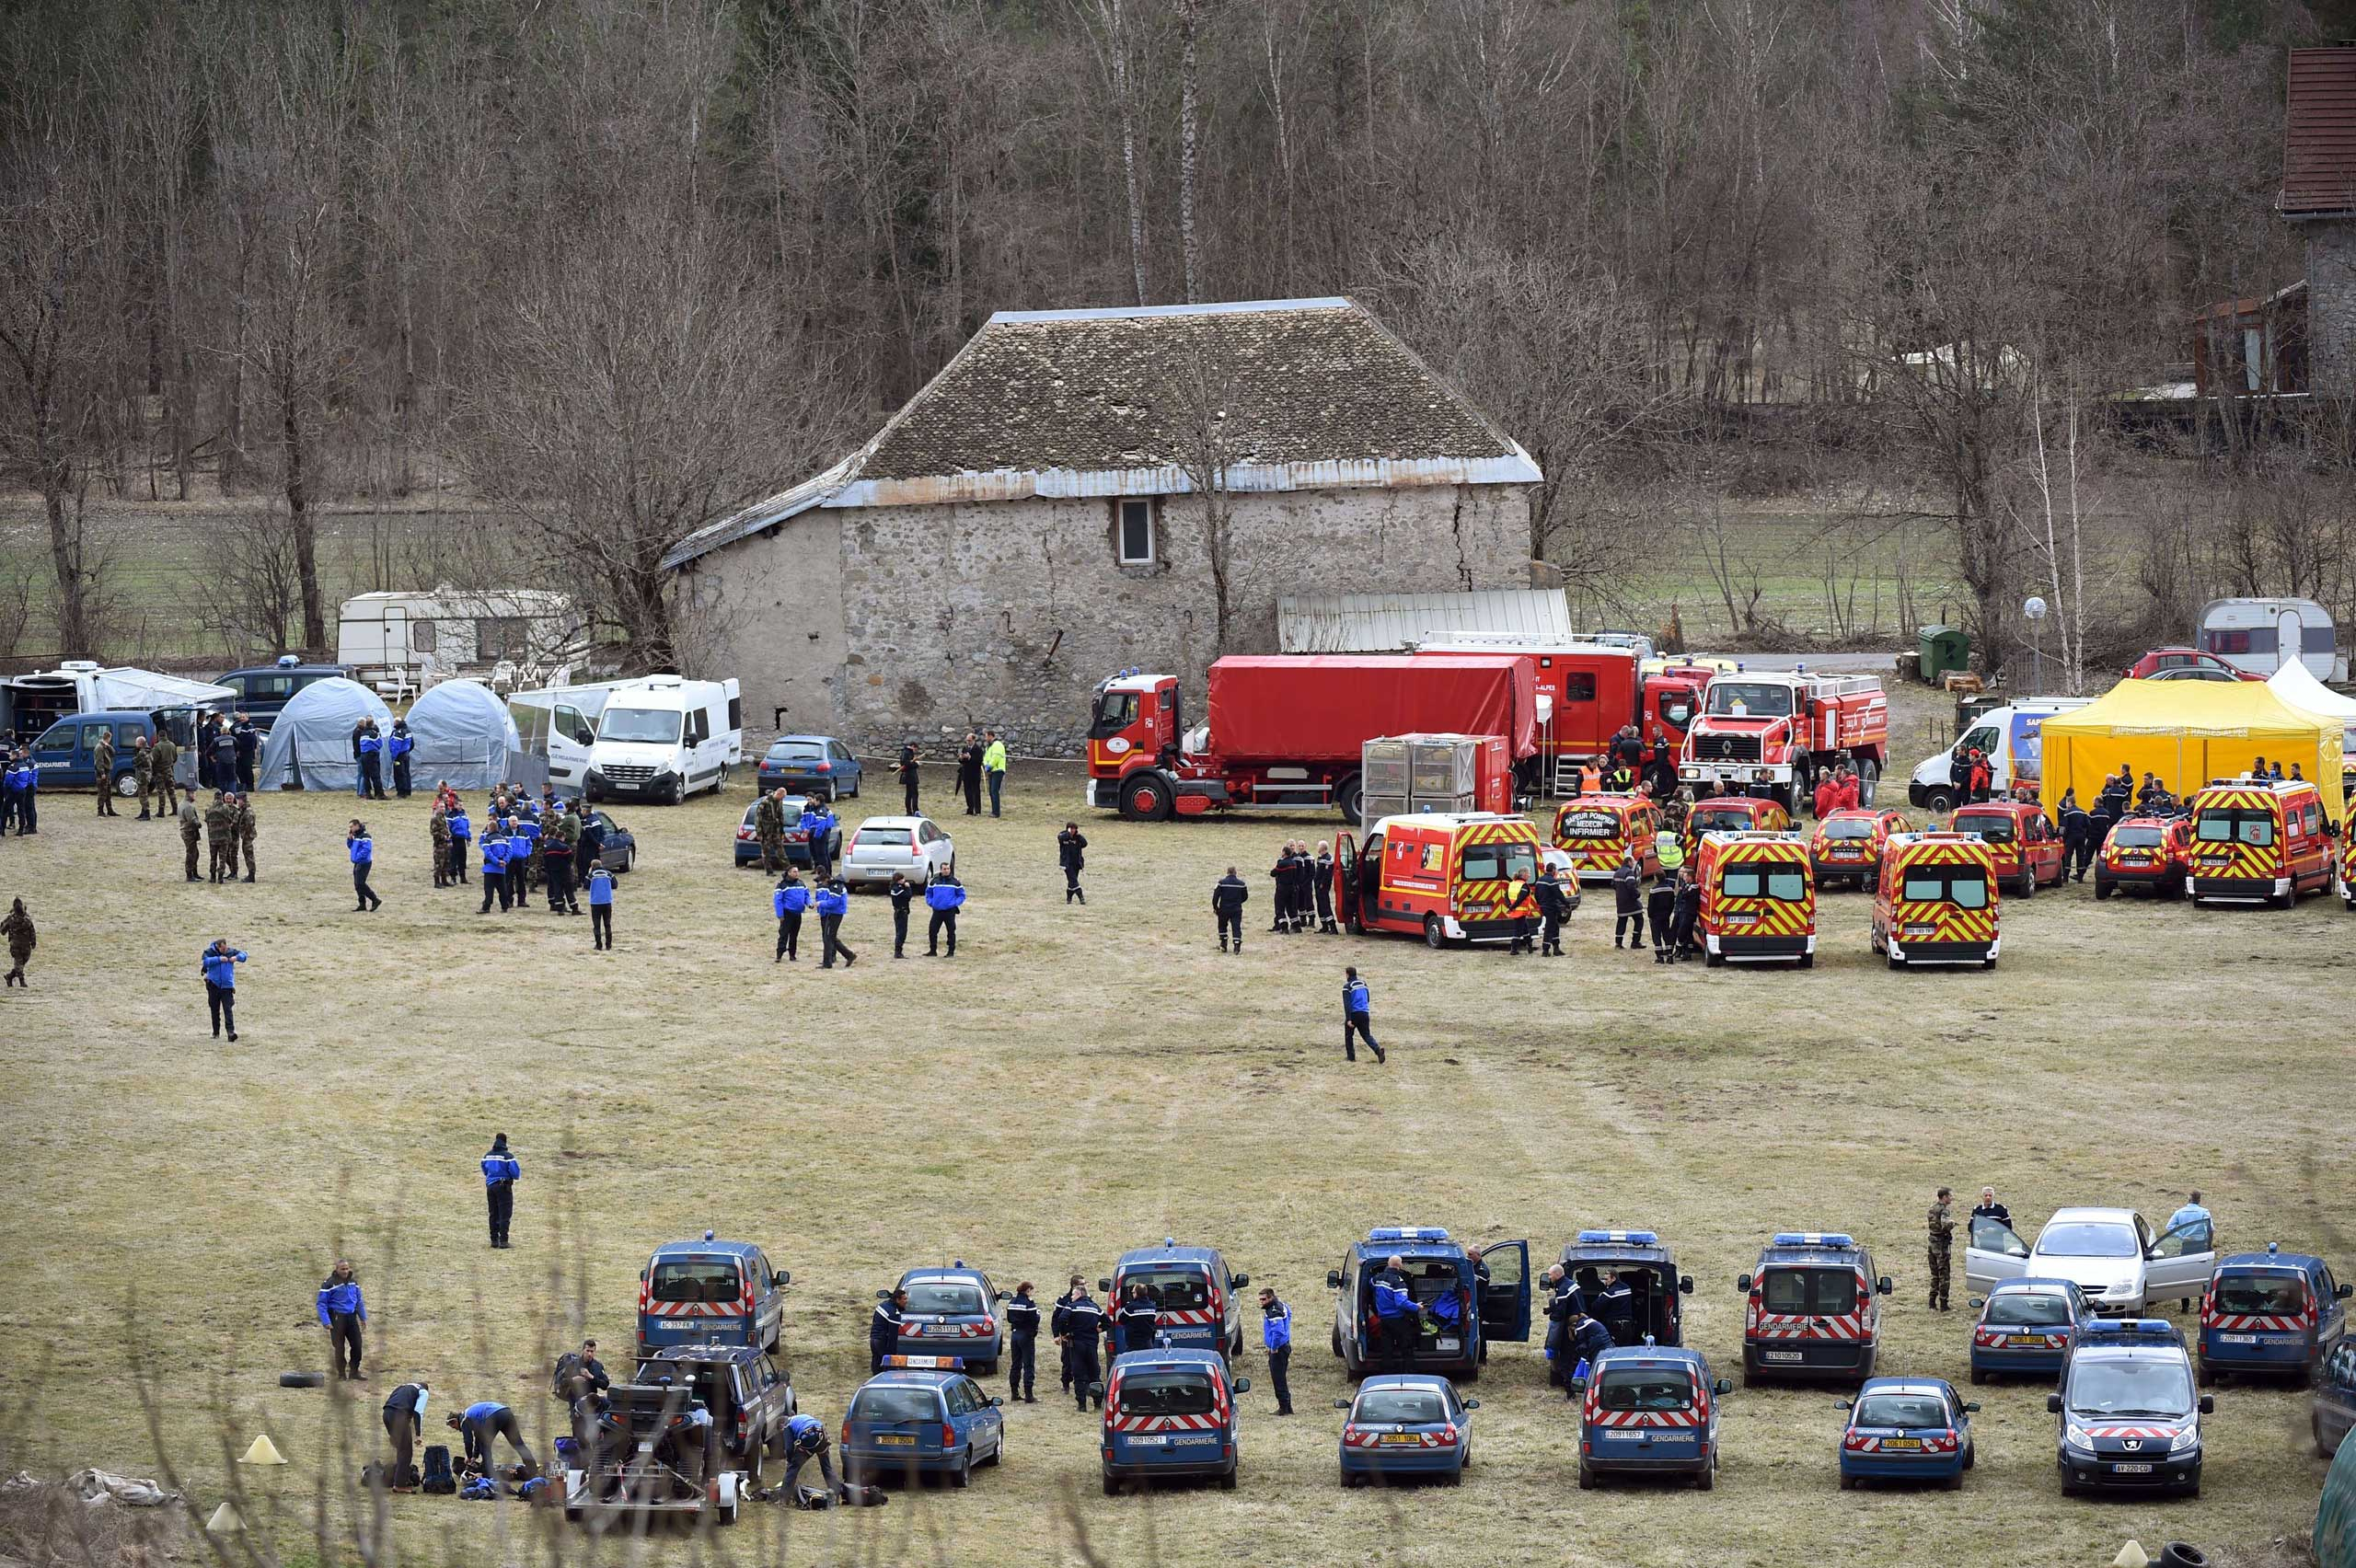 French emergency services workers and members of the French gendarmerie gather in Seyne, south-eastern France, on March 24, 2015, near the site where a Germanwings Airbus A320 crashed in the French Alps.